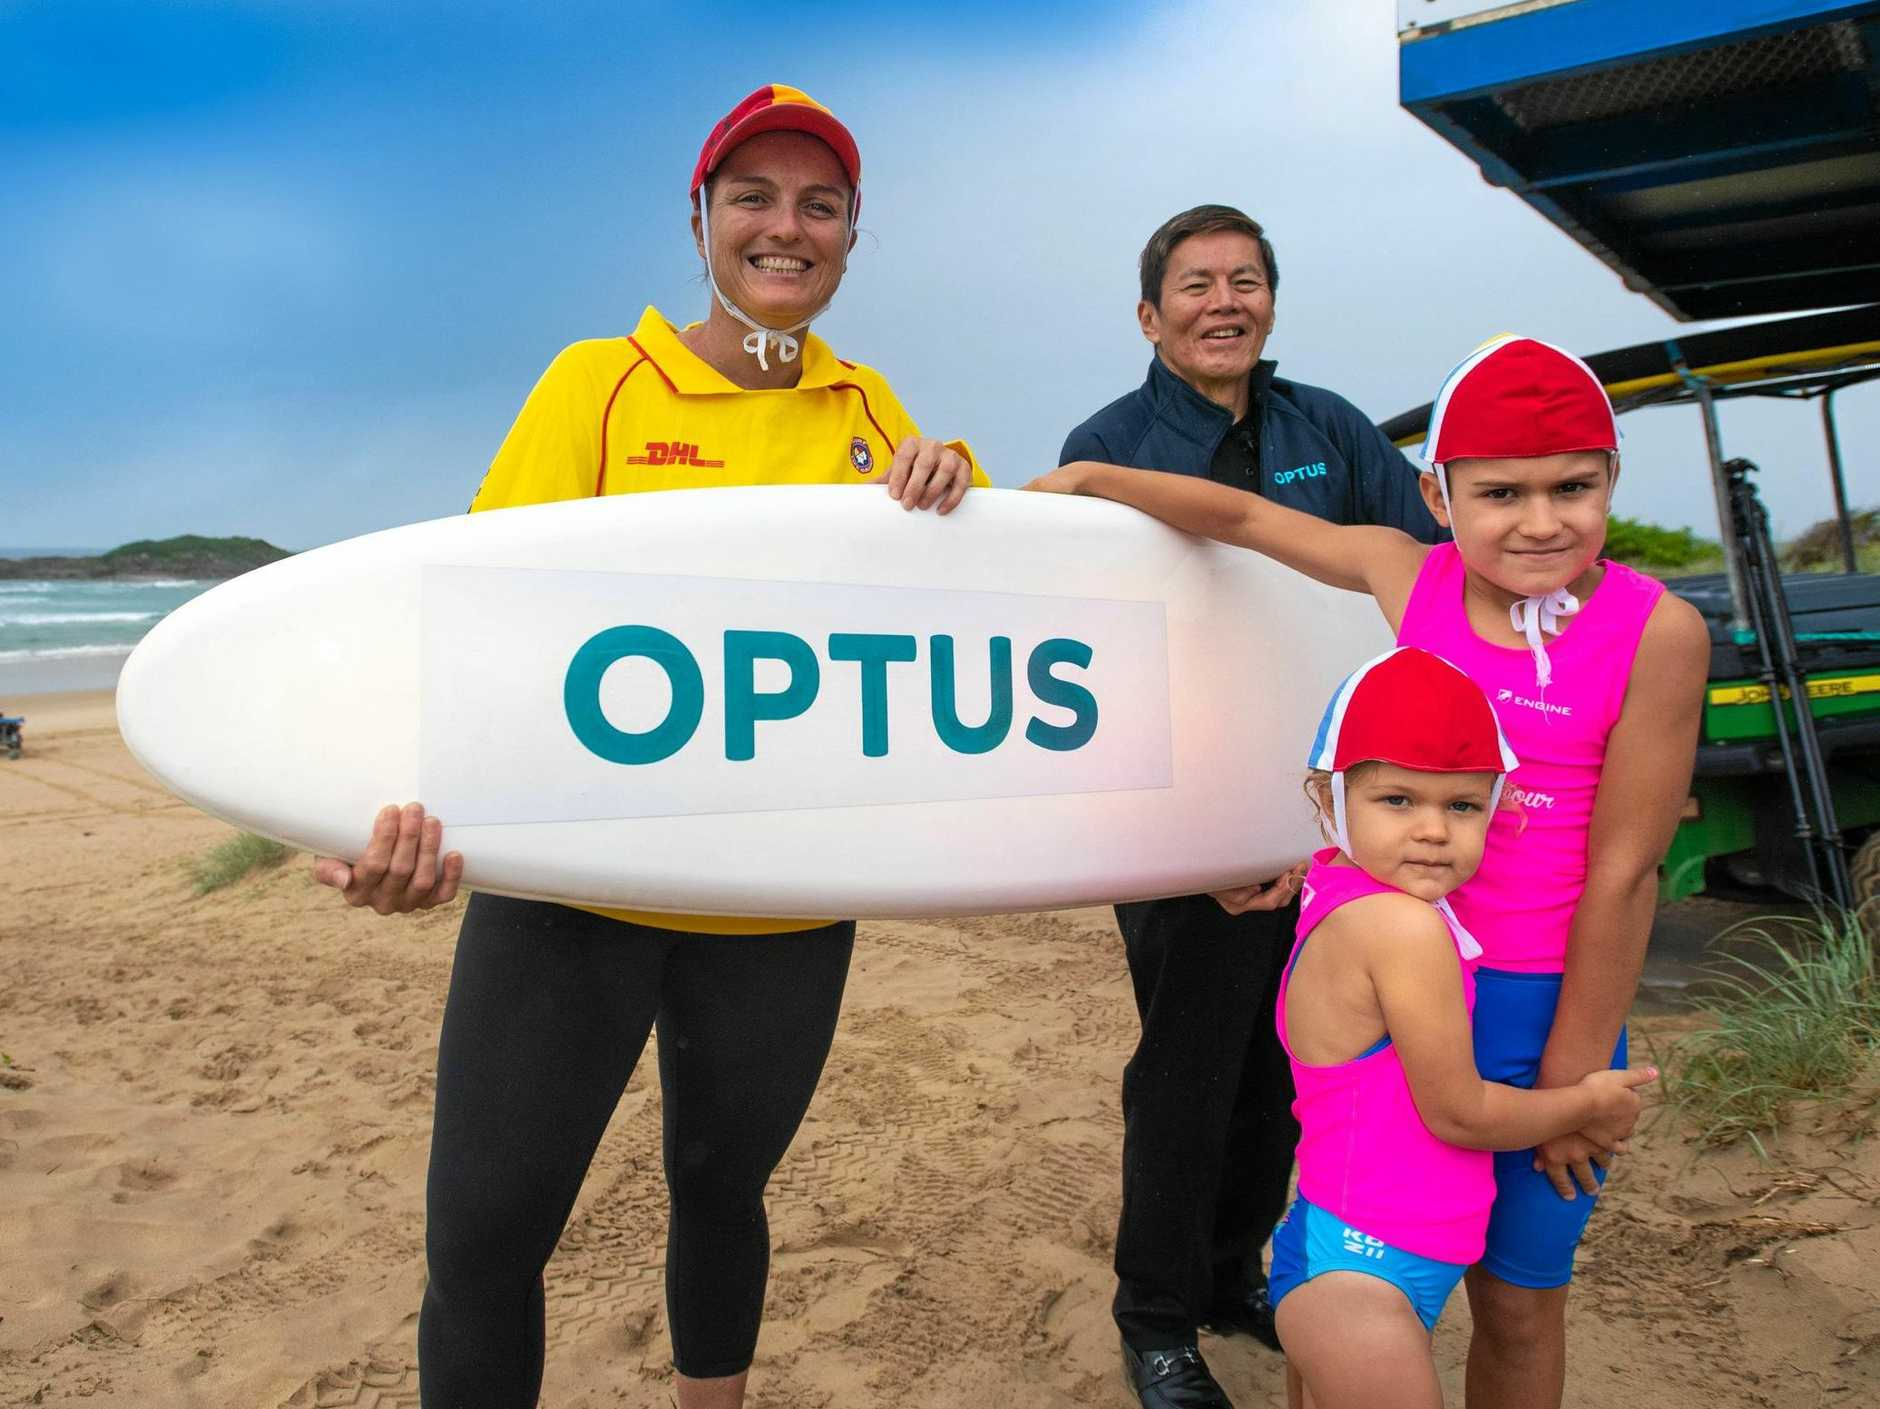 VALUED PARTNERSHIP: Coffs Harbour Surf Lifesaving Club directr Rachael Smyth, nippers Alexis and Harry Wills and Optus CEO Allen Lew.